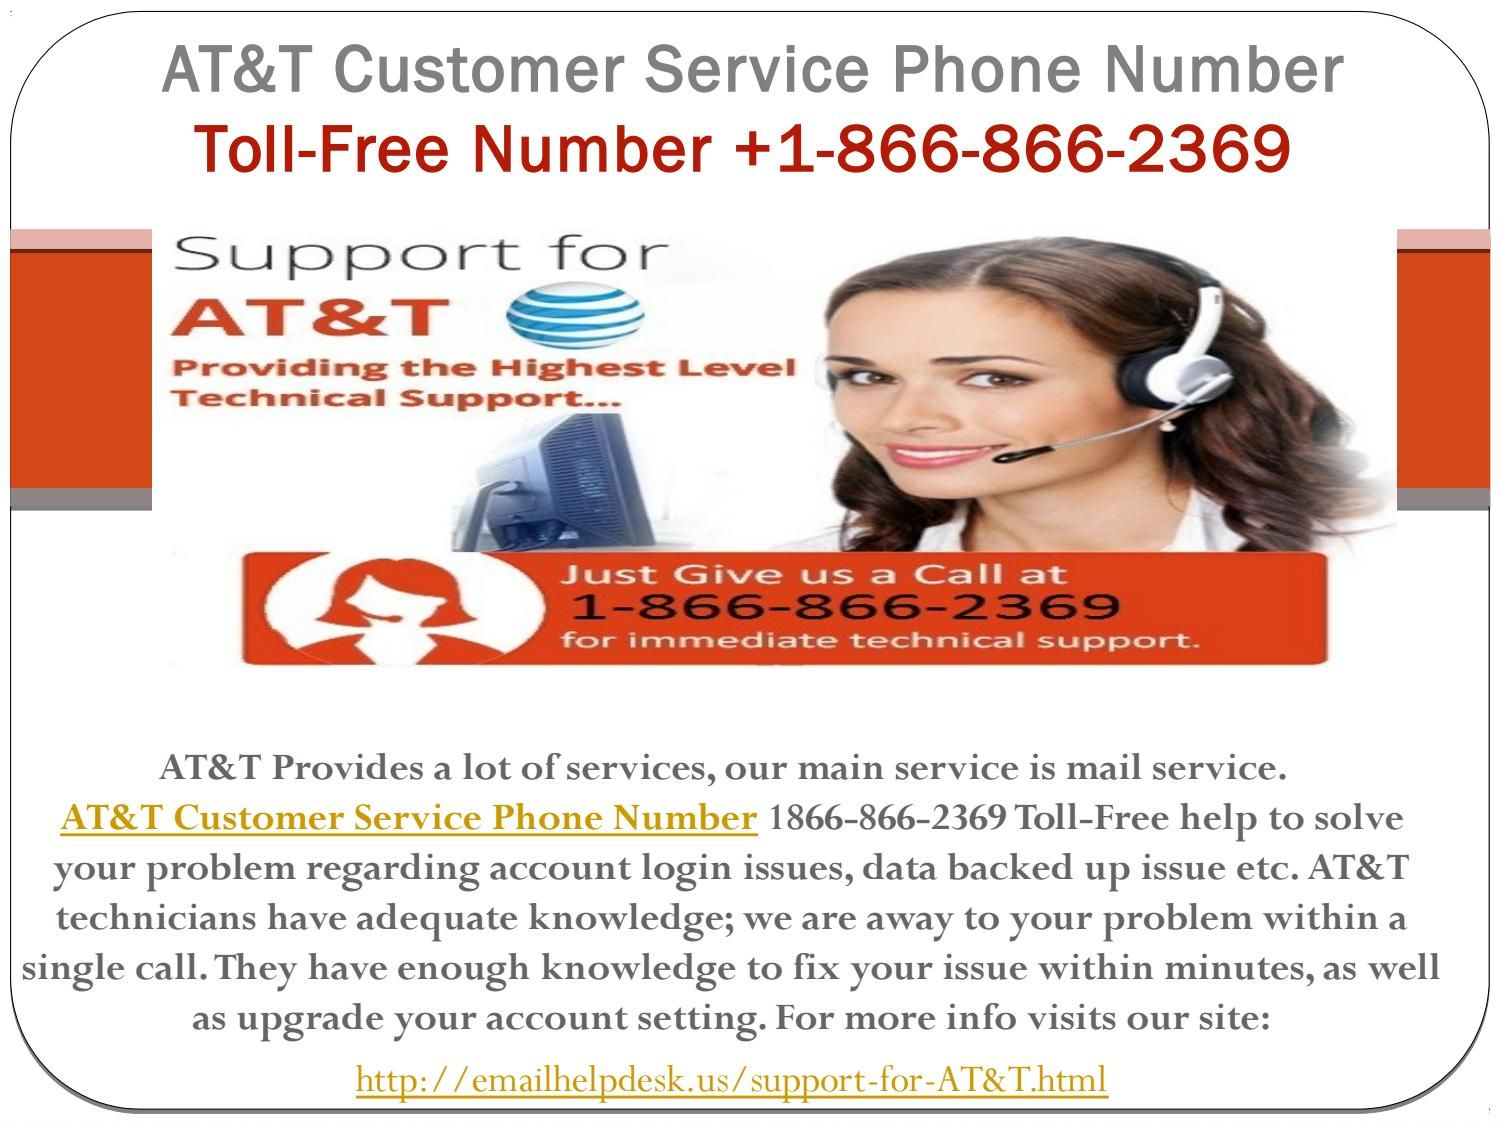 AT&T Customer Service 18668662369 Phone Number For